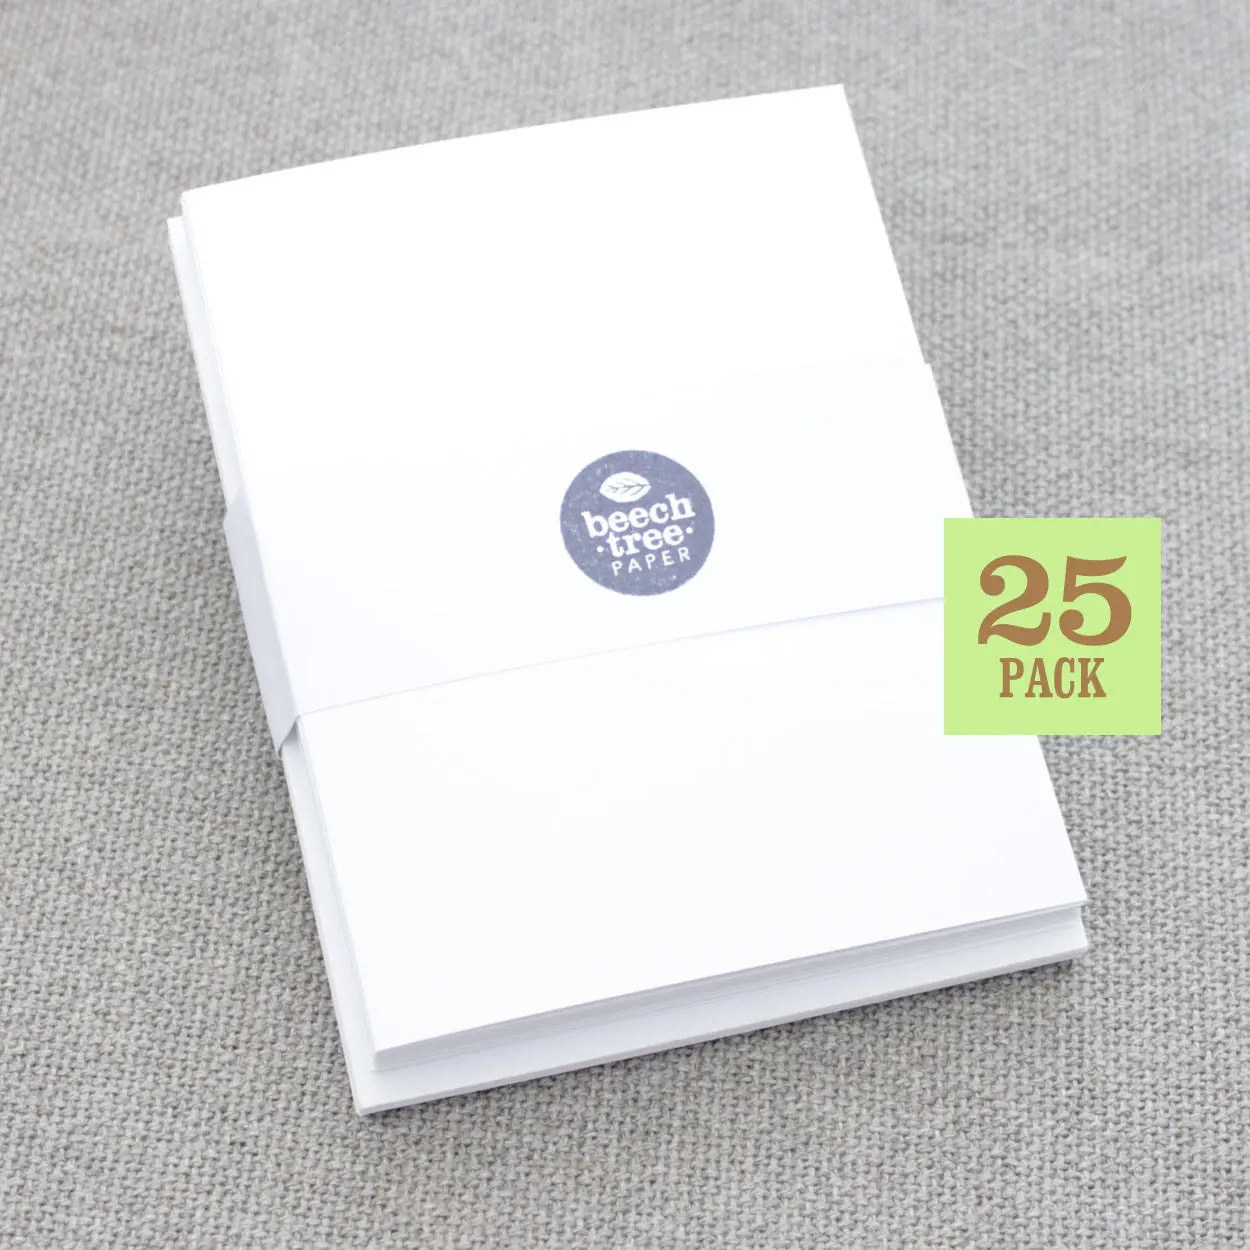 Blank Notecards with Envelope Size A2 White Cards and Etsy